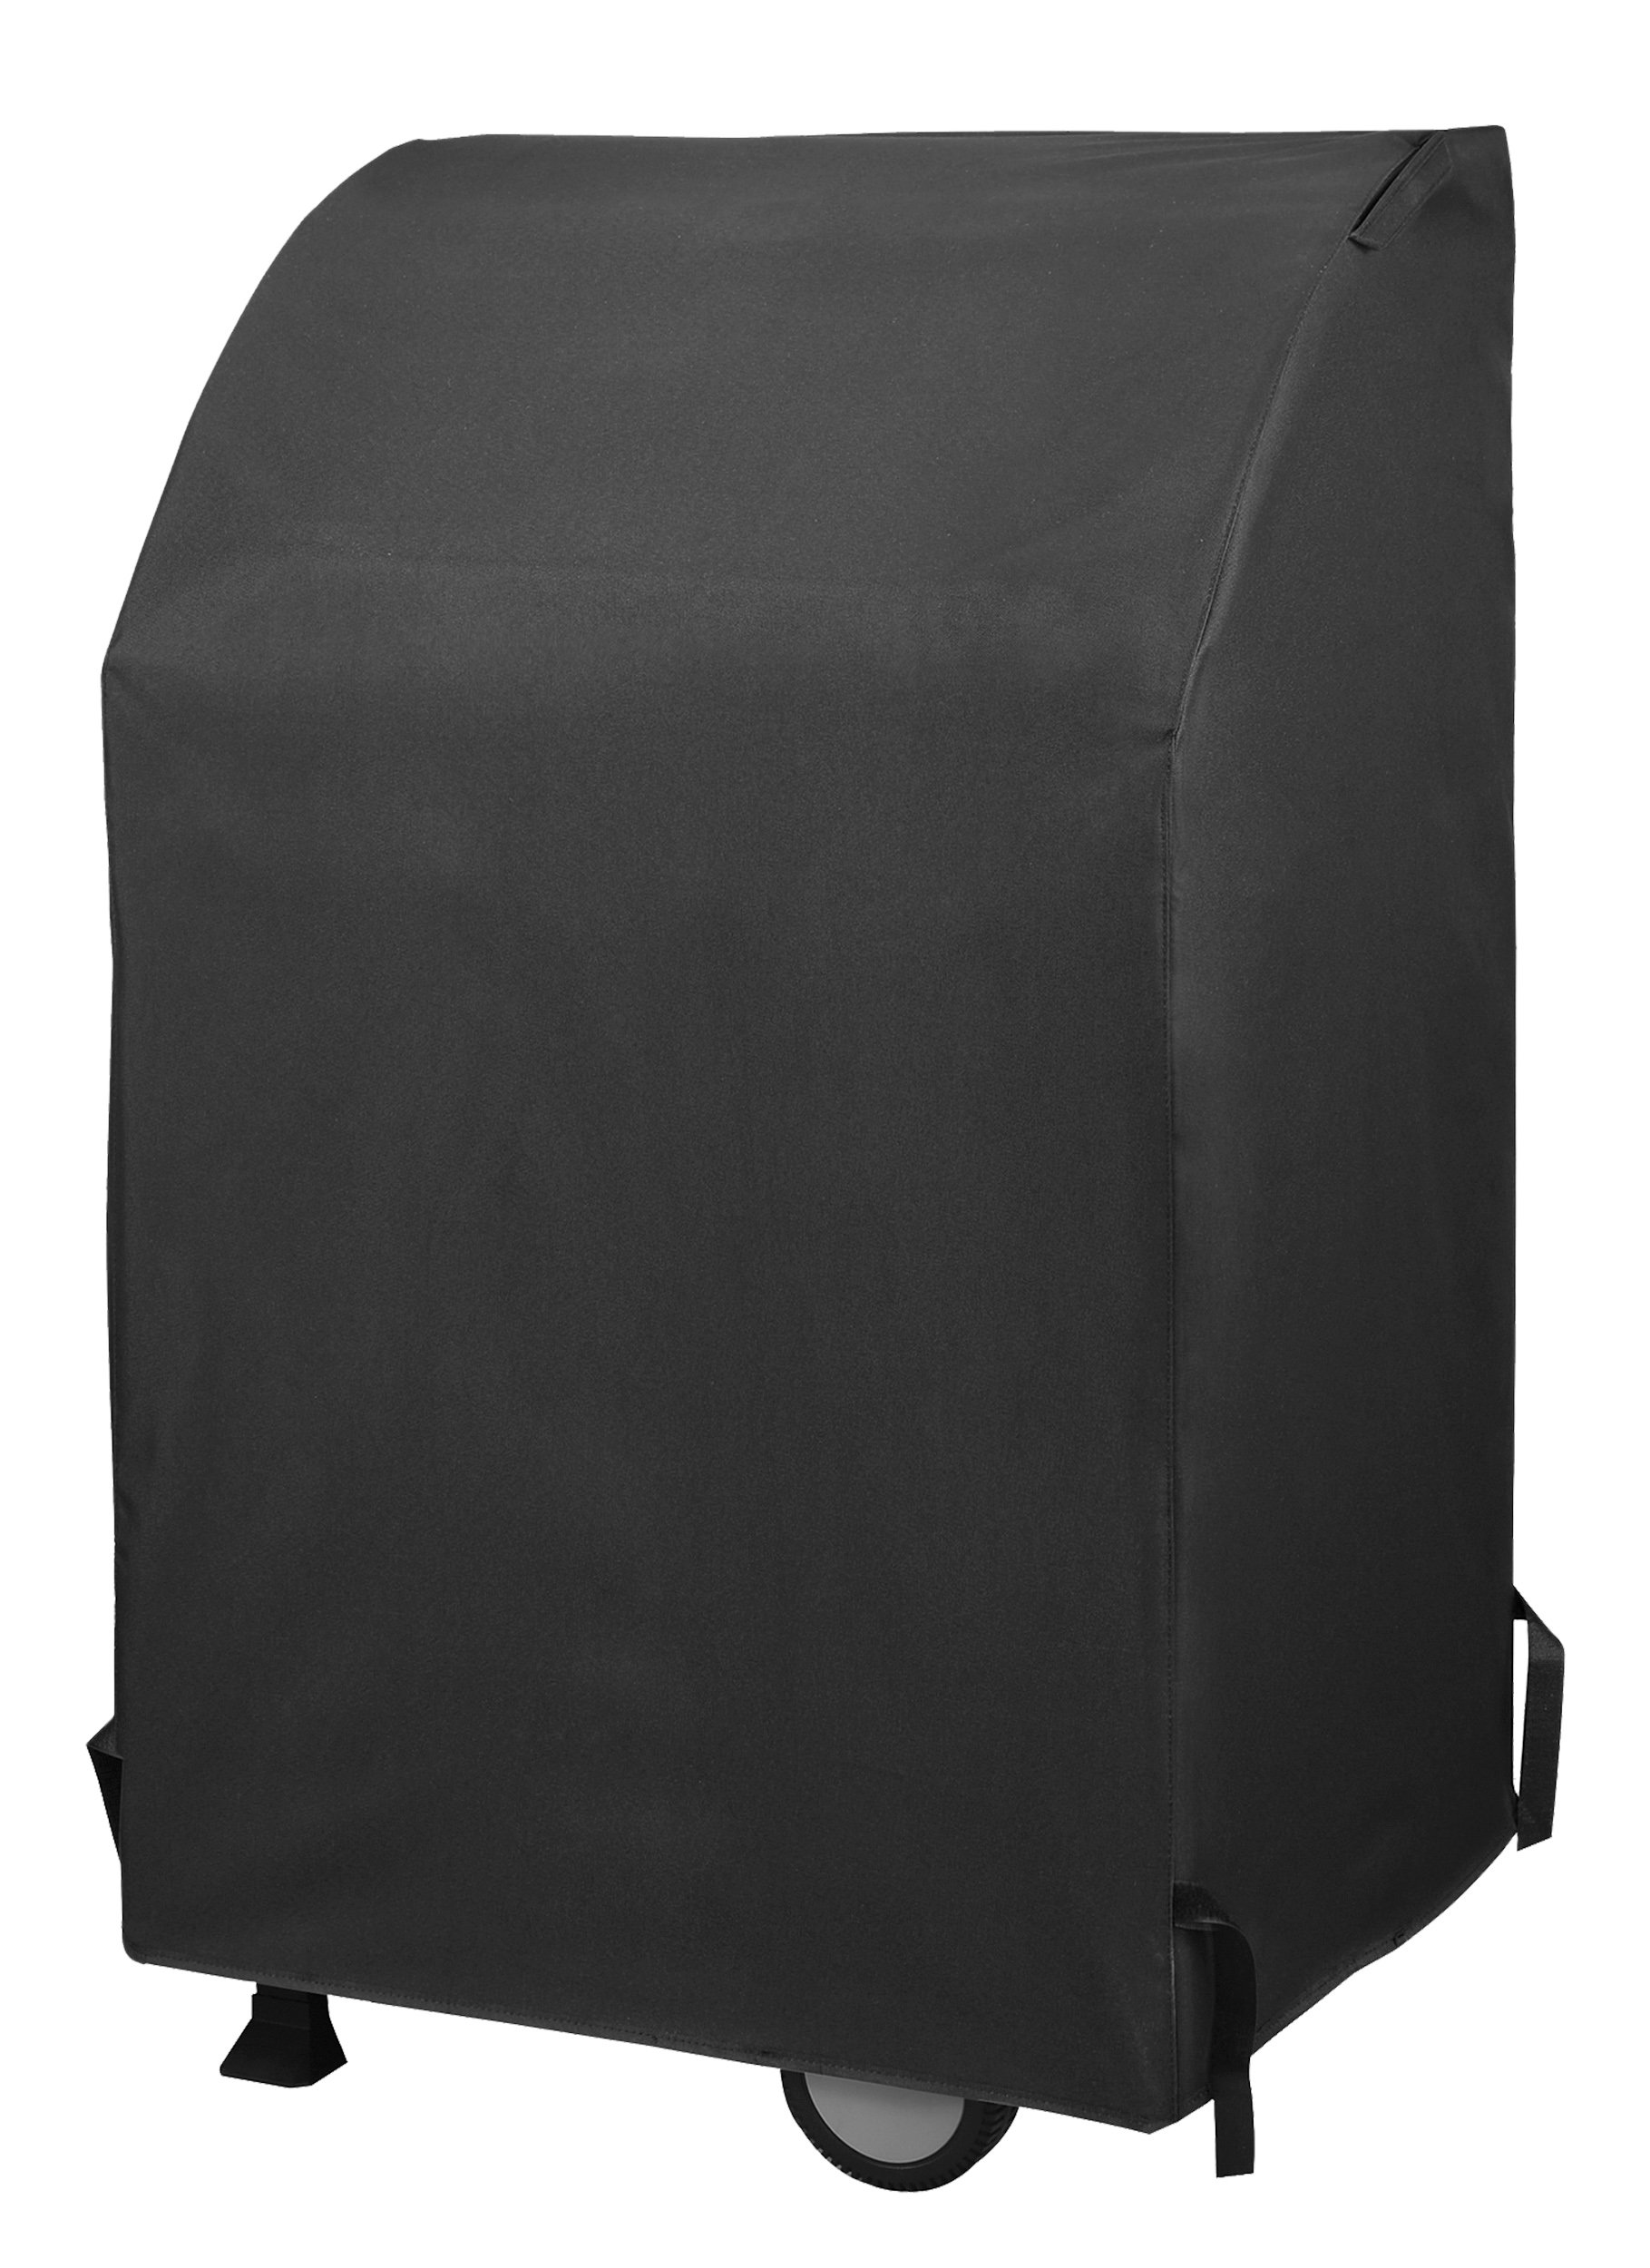 UNICOOK Heavy Duty Waterproof Two Burner Gas Grill Cover, 32-Inch Width BBQ Cover, Small Space Grill Cover, Fade Resistant, Fit Grills with Collapsed Side Tables for Weber Char-Broil and More